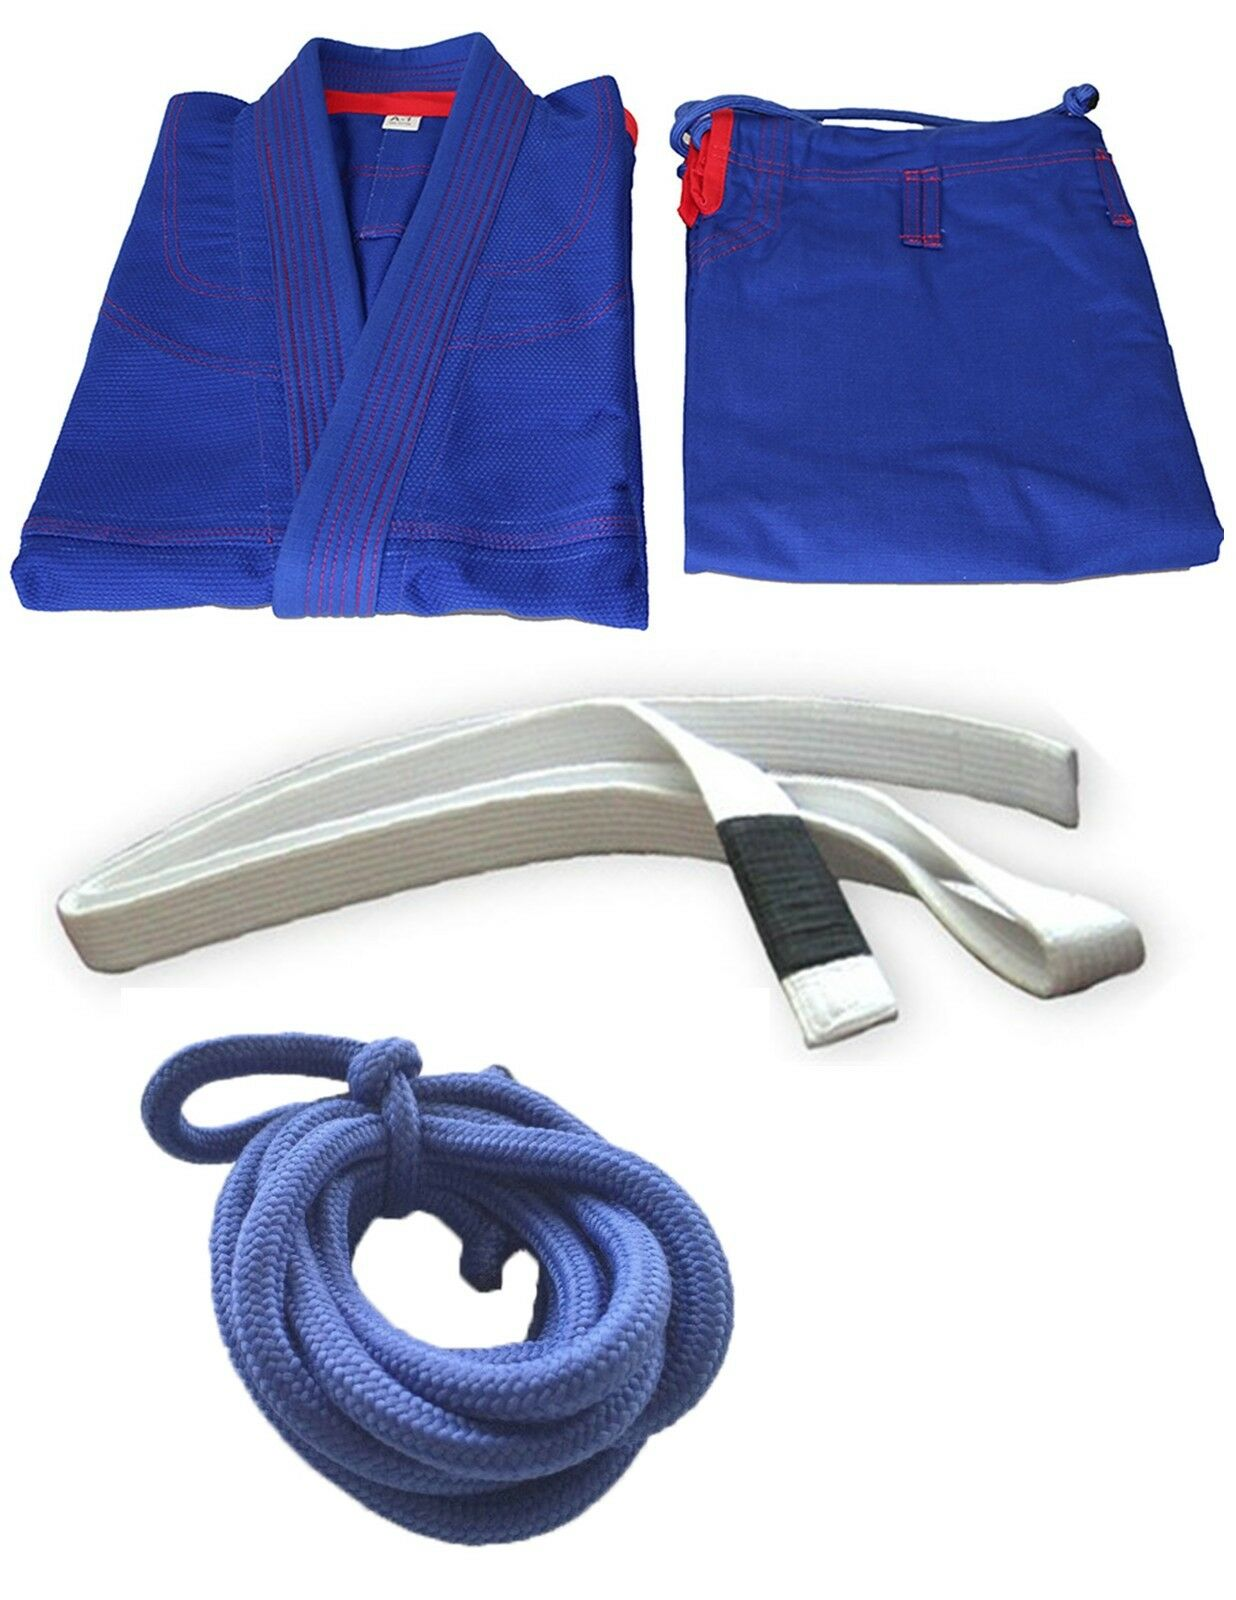 Brazilian Jiu Jitsu Gi Mens - blueE RED 100% Cotton Preshrunk,Free Ship Belt Rope